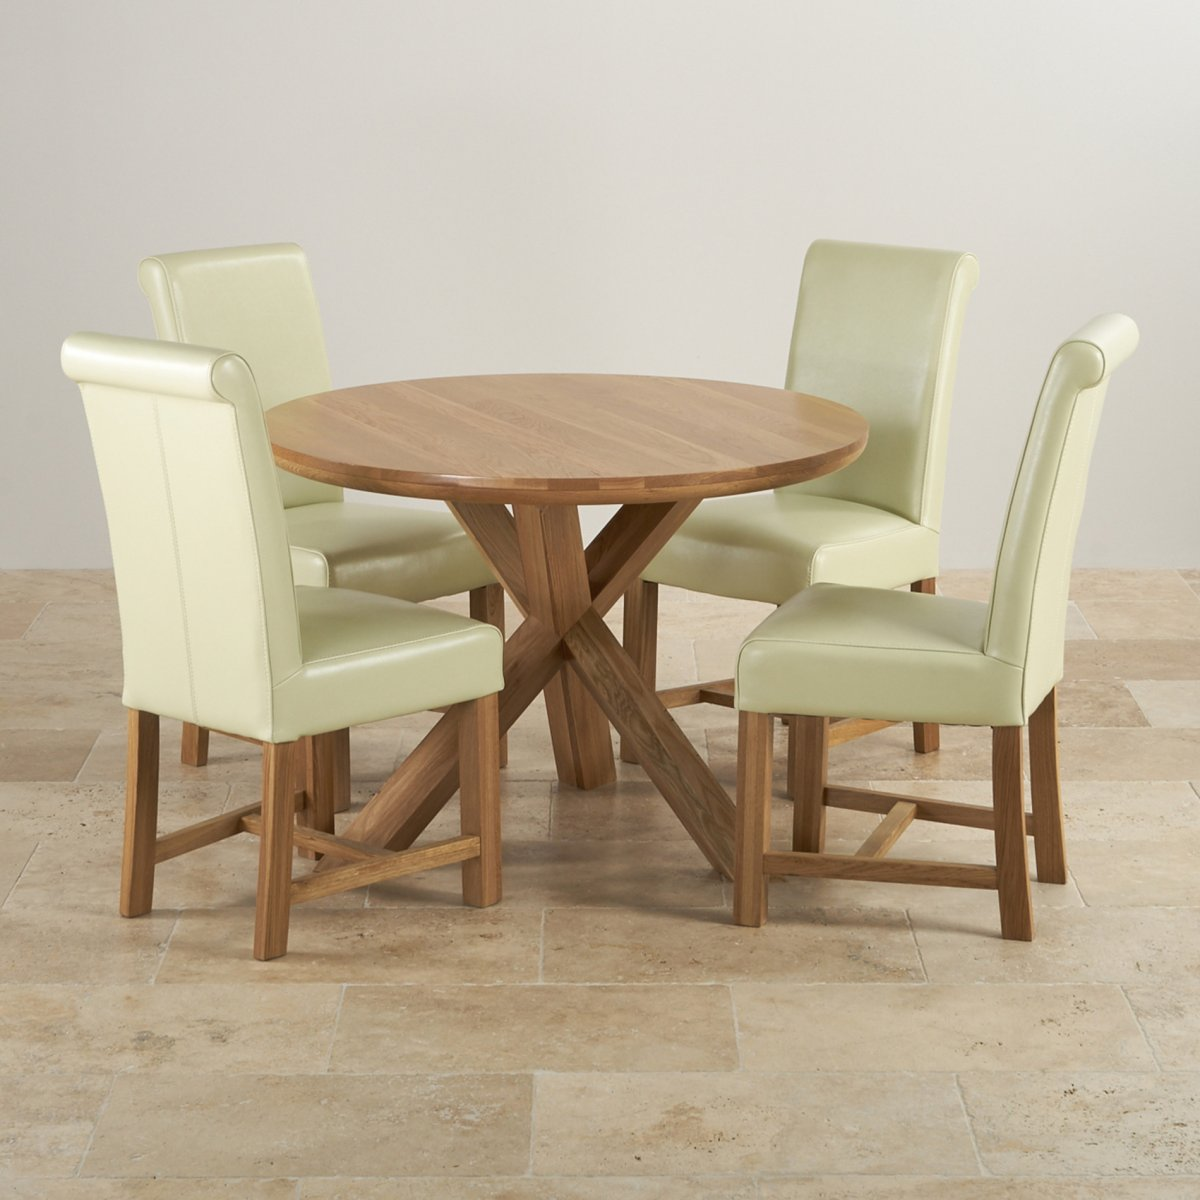 chair for dining table correct posture kneeling natural oak round set 43 4 cream leather chairs